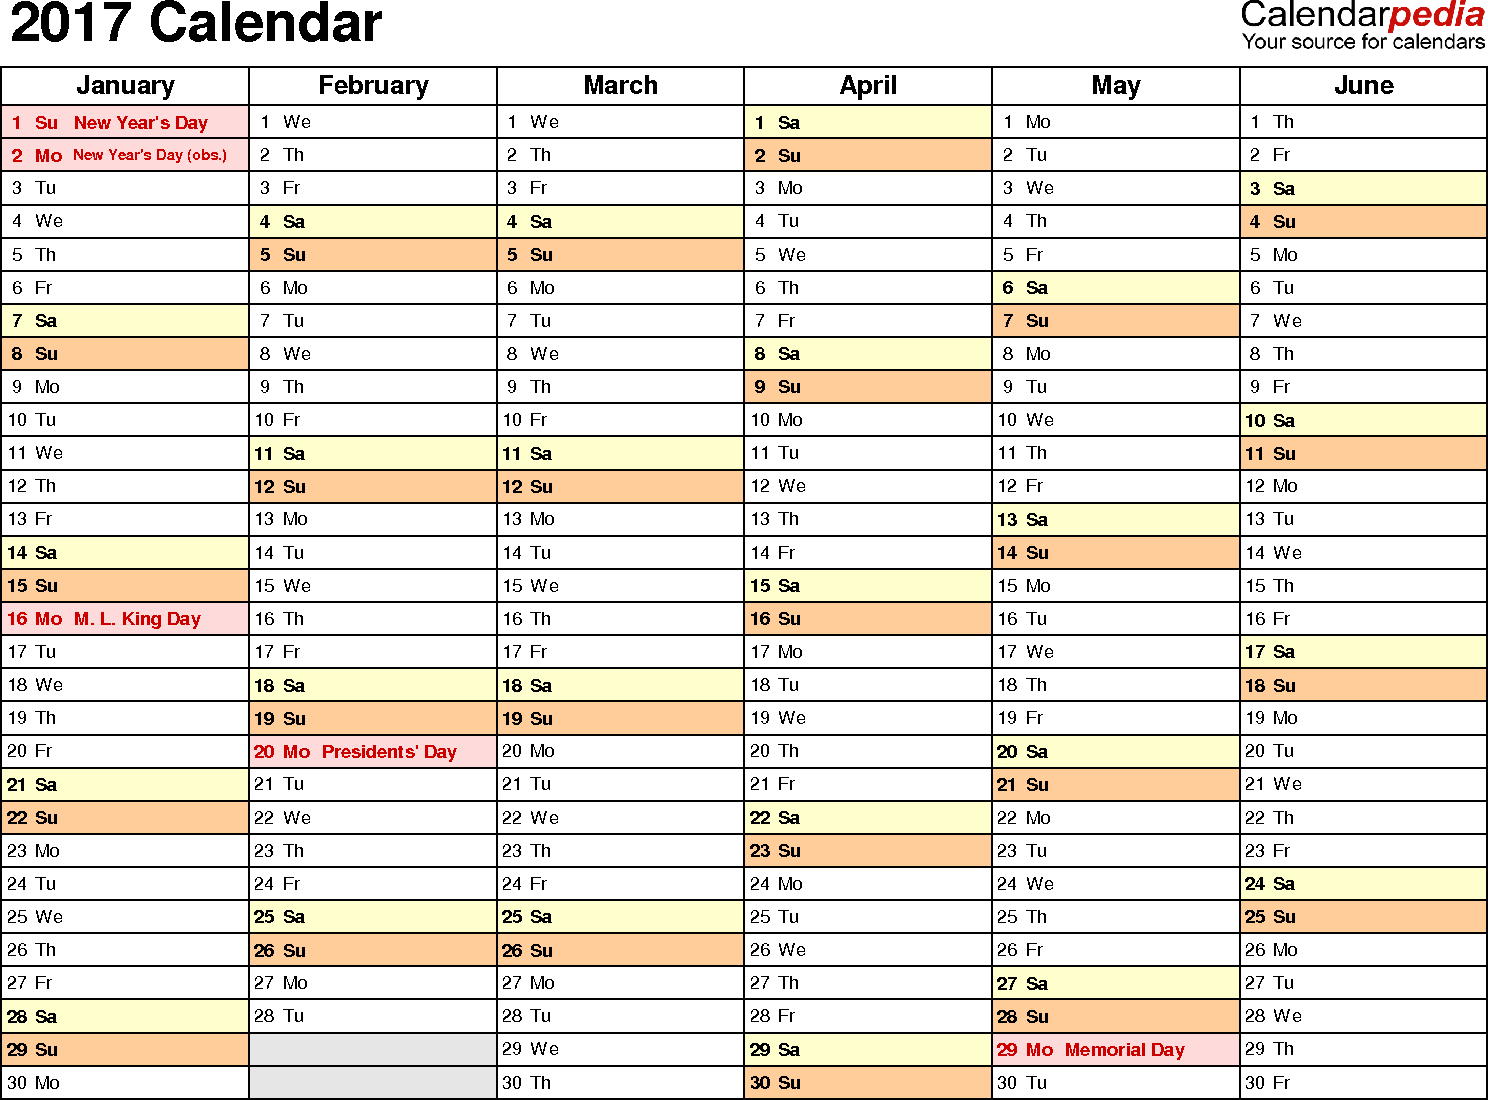 Ediblewildsus  Winning  Calendar  Download  Free Printable Excel Templates Xls With Glamorous Template   Calendar For Excel Months Horizontally  Pages Landscape Orientation With Cute Excel Vba Tutorial Pdf Also Using Offset In Excel In Addition Excel Example And Show Formulas In Excel Mac As Well As Protect A Cell In Excel Additionally How To Import A Pdf Into Excel From Calendarpediacom With Ediblewildsus  Glamorous  Calendar  Download  Free Printable Excel Templates Xls With Cute Template   Calendar For Excel Months Horizontally  Pages Landscape Orientation And Winning Excel Vba Tutorial Pdf Also Using Offset In Excel In Addition Excel Example From Calendarpediacom